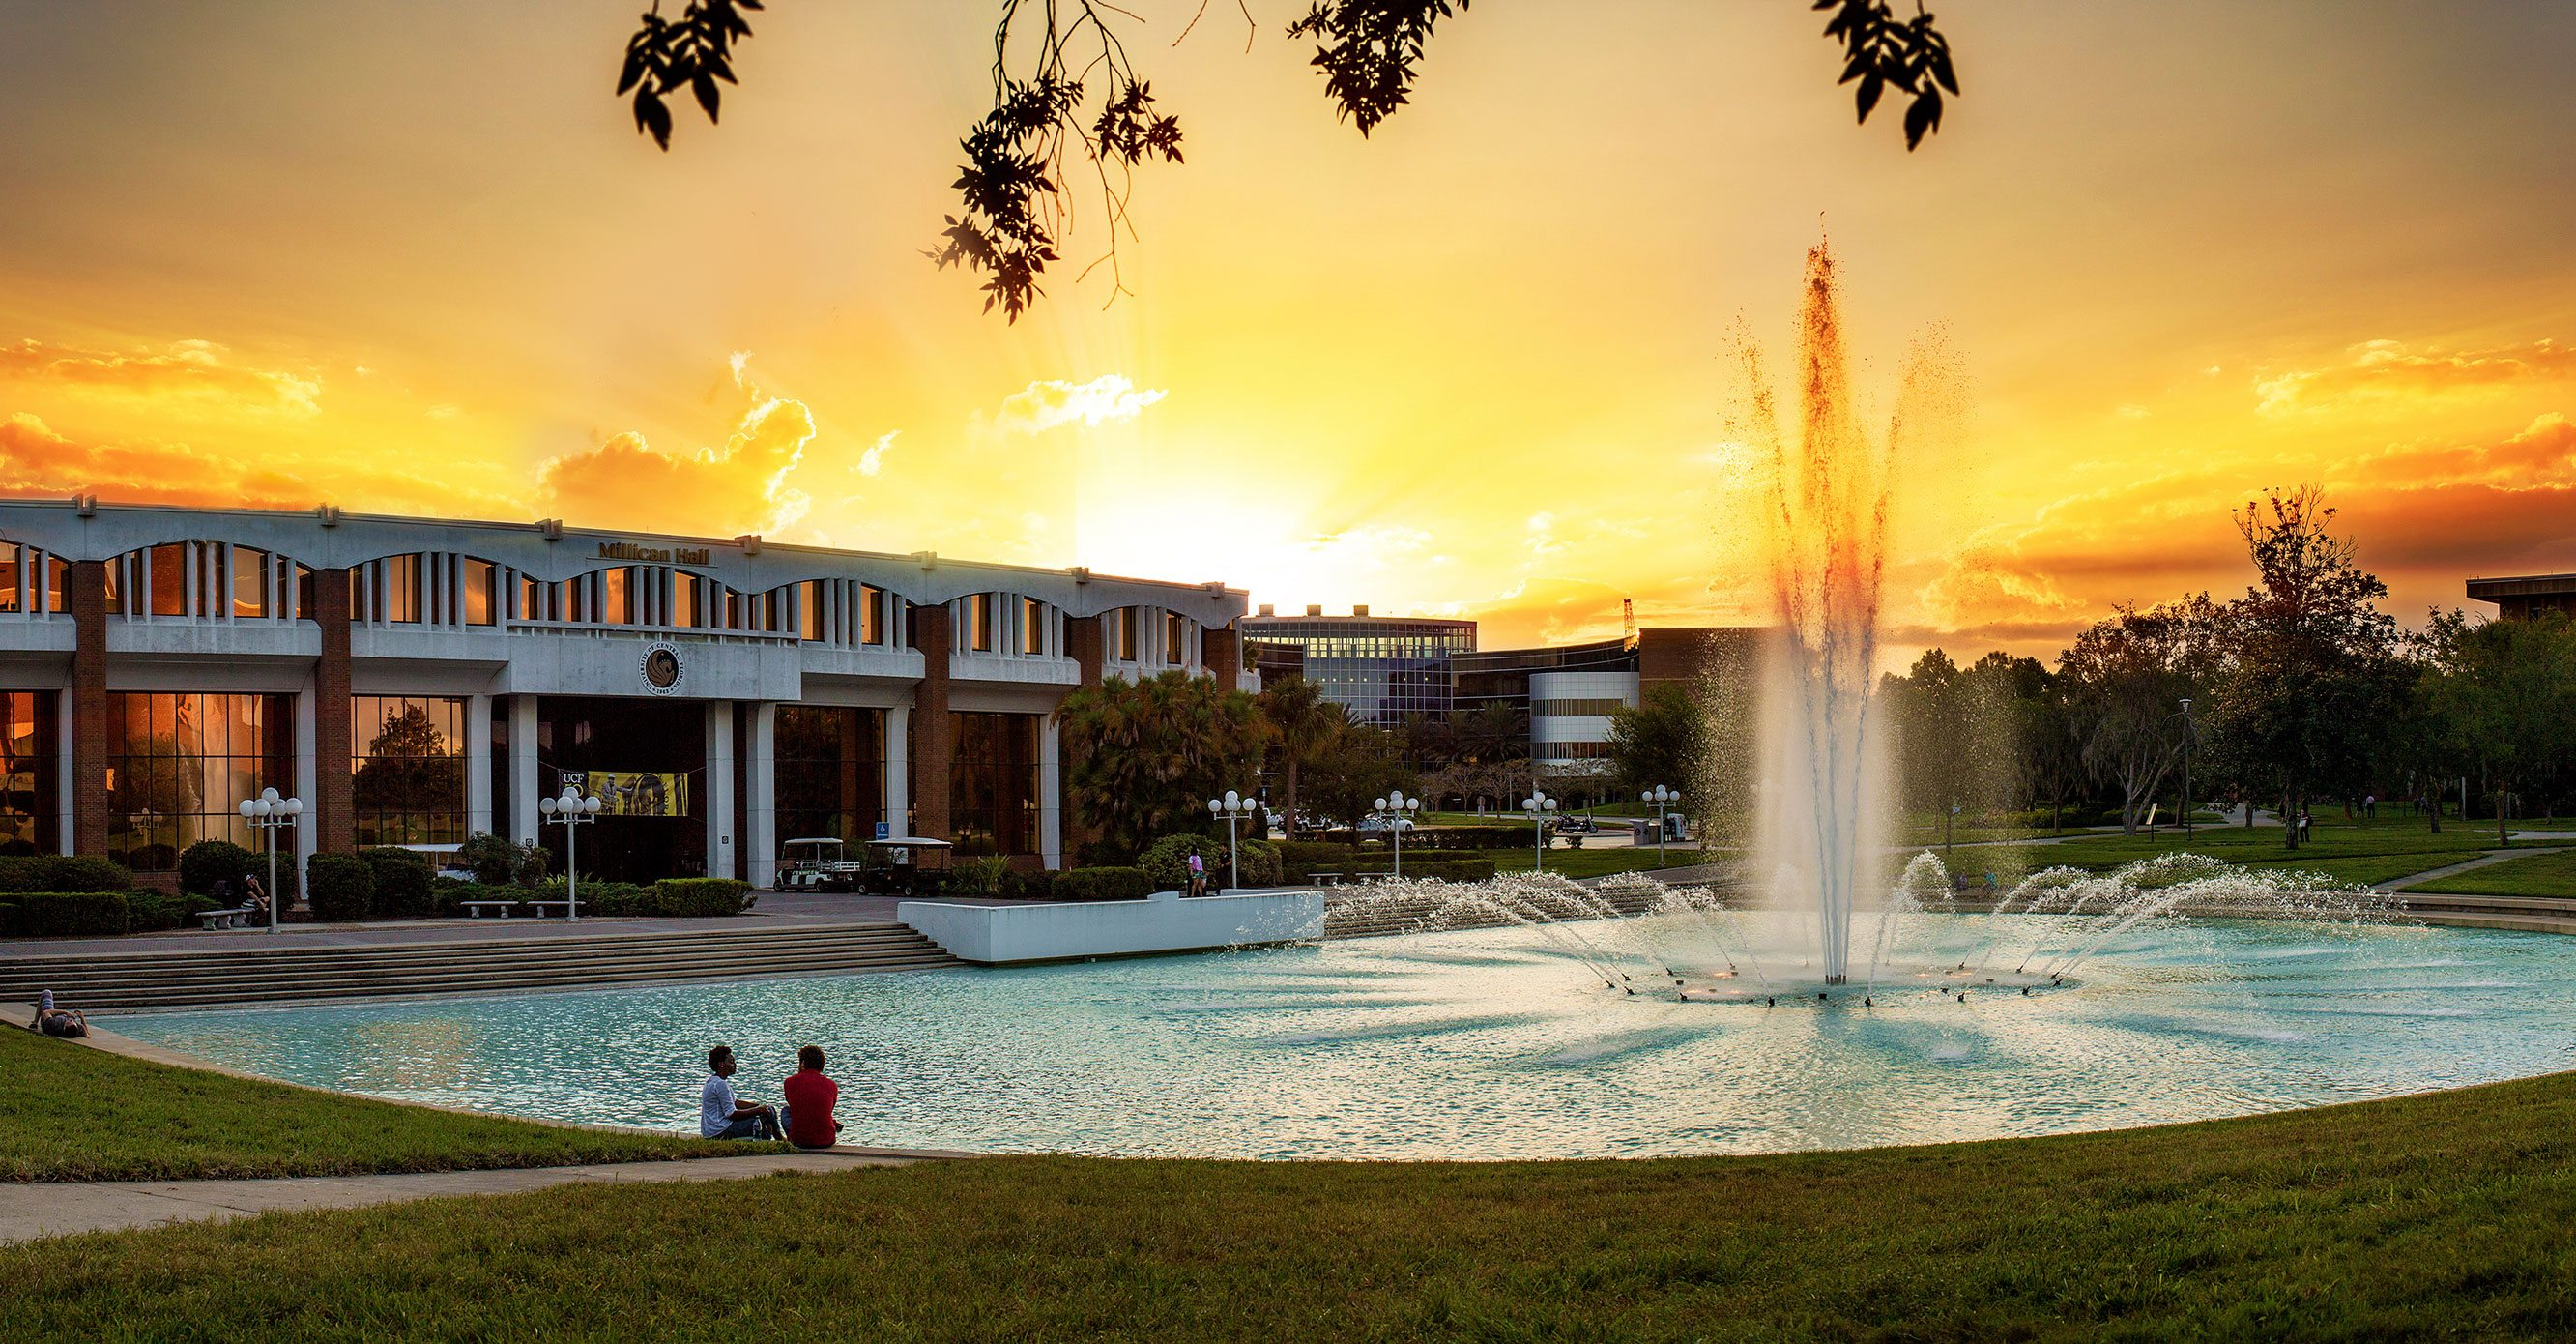 University of Central Florida photo